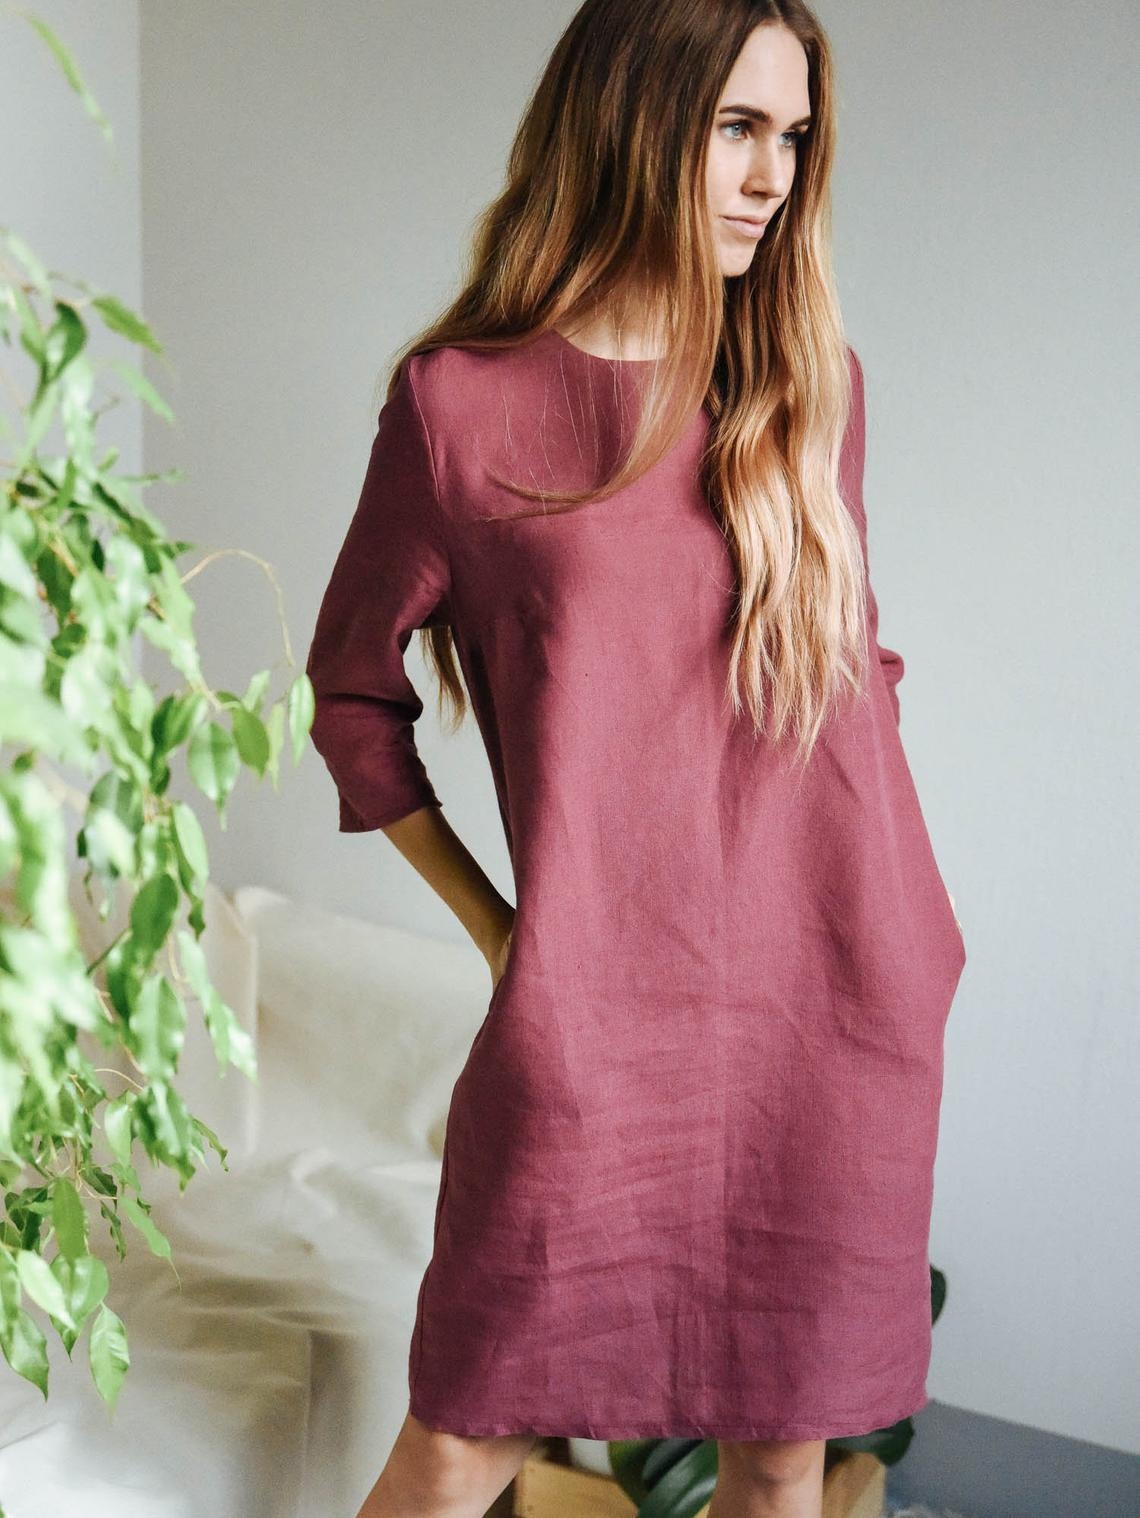 Linen Dresses | Linen Flax Dresses | Made to Order | Manufacturing